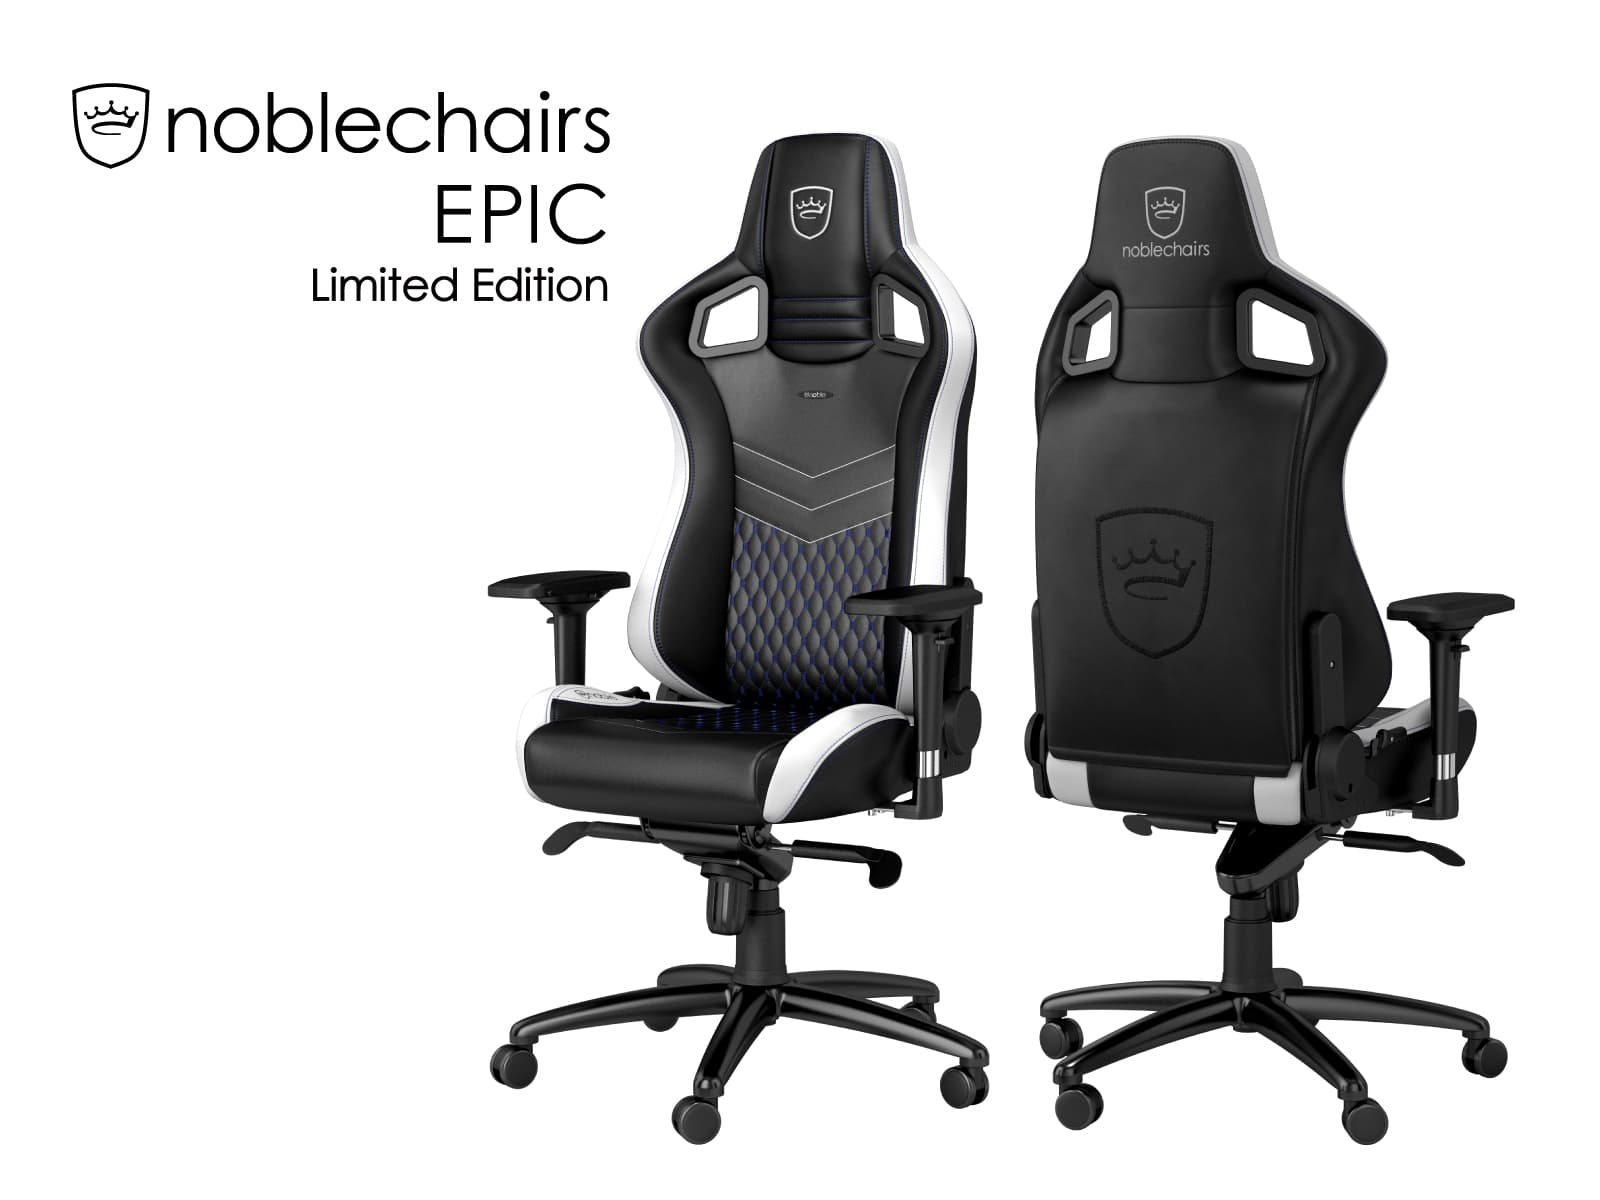 noblechairs-EPIC-LimitedEdition-01